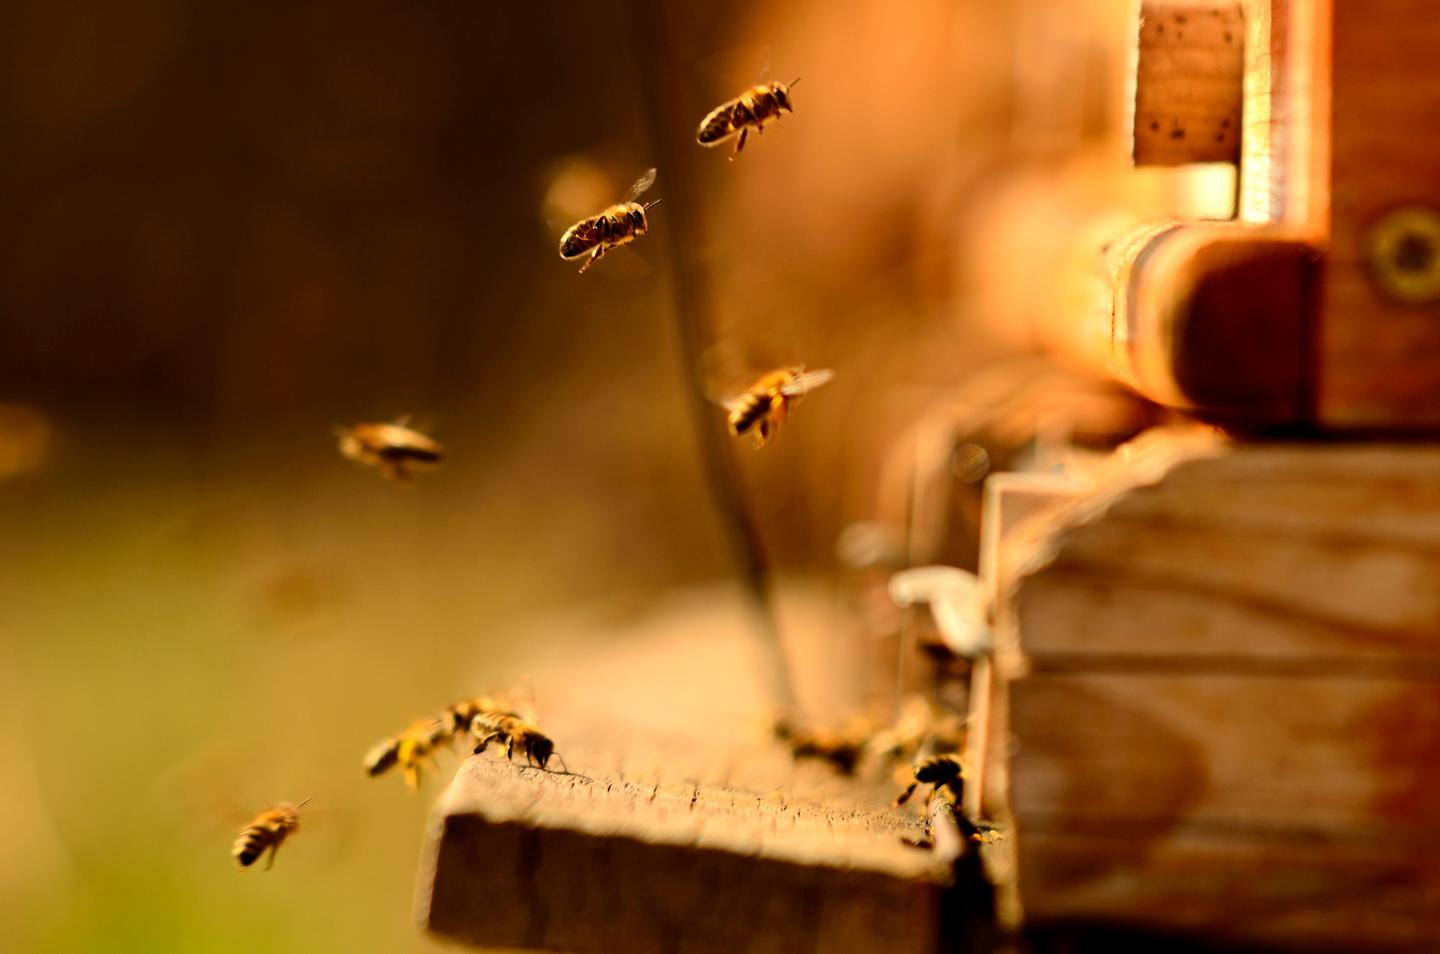 Scientists have found that a common insecticide can impact the sleep cycles of bees